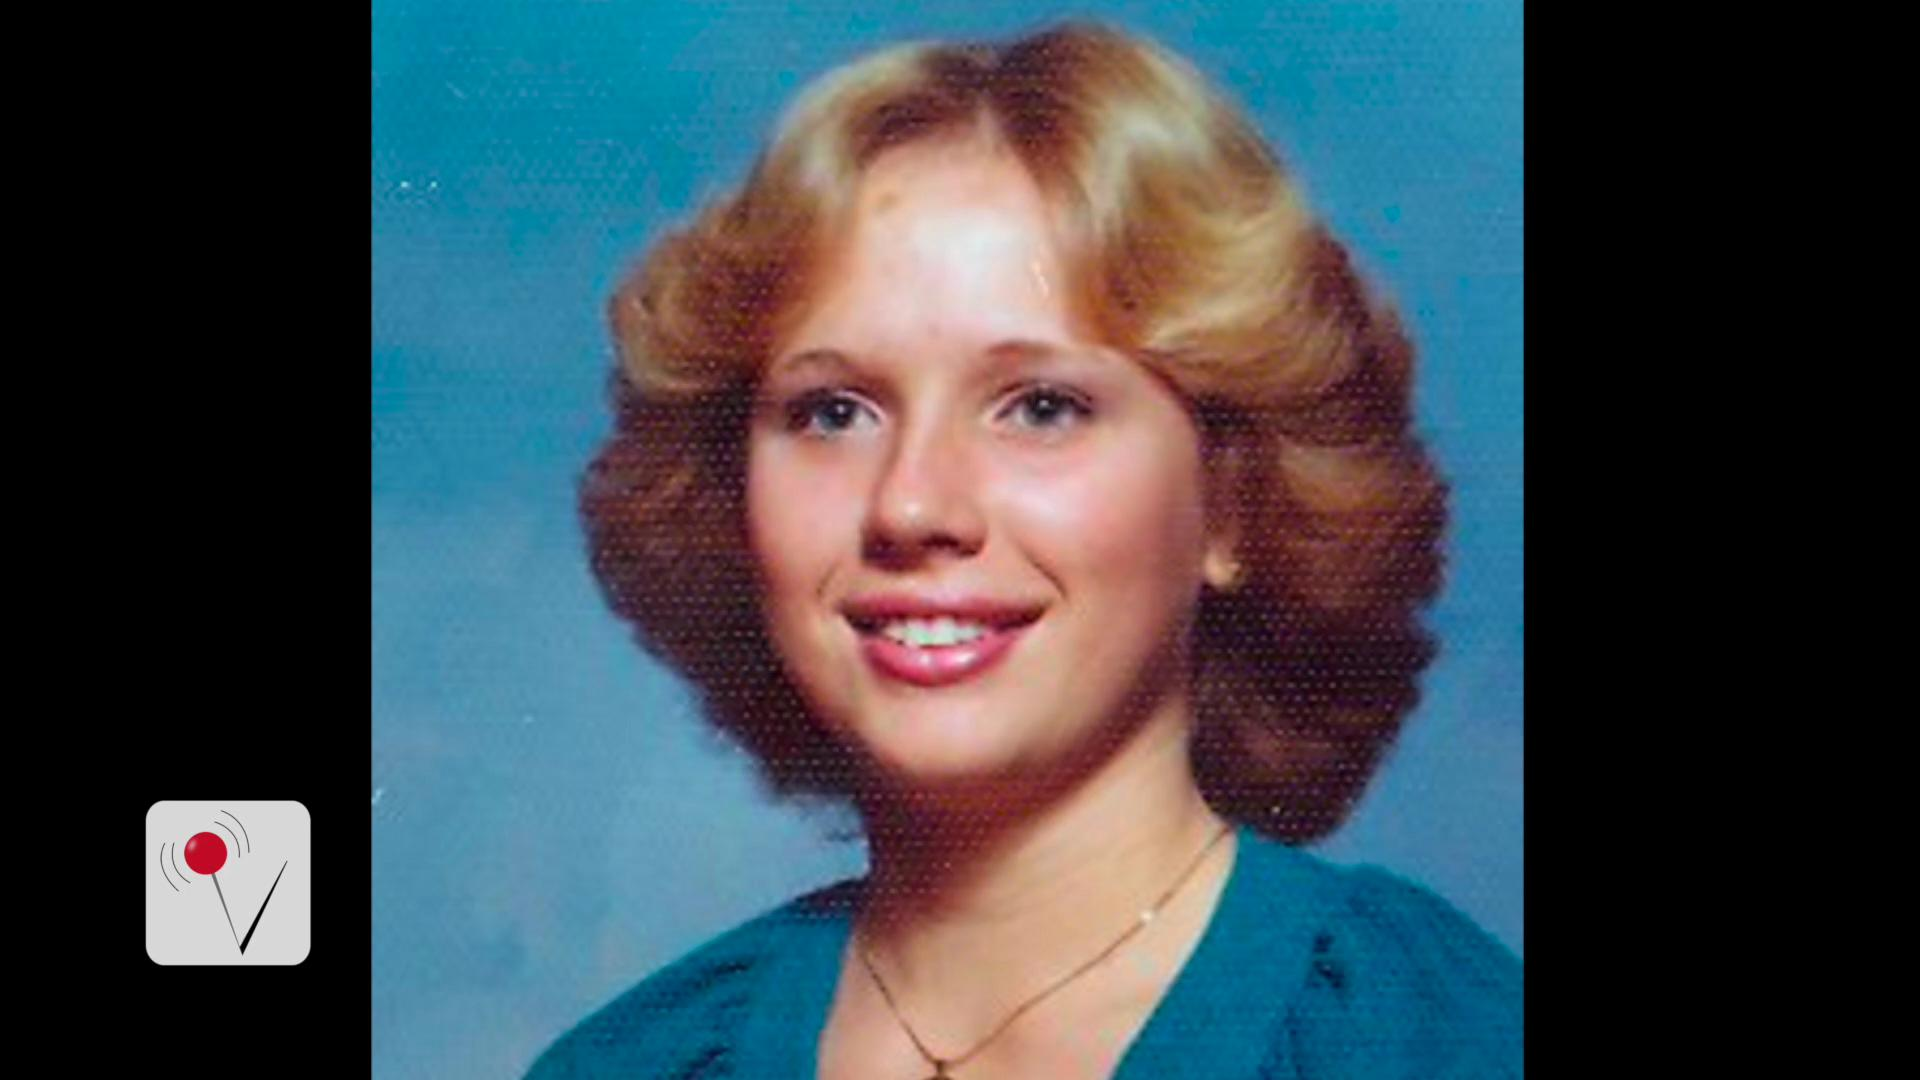 Arrest Made in 36-Year Old Cold Case Murder